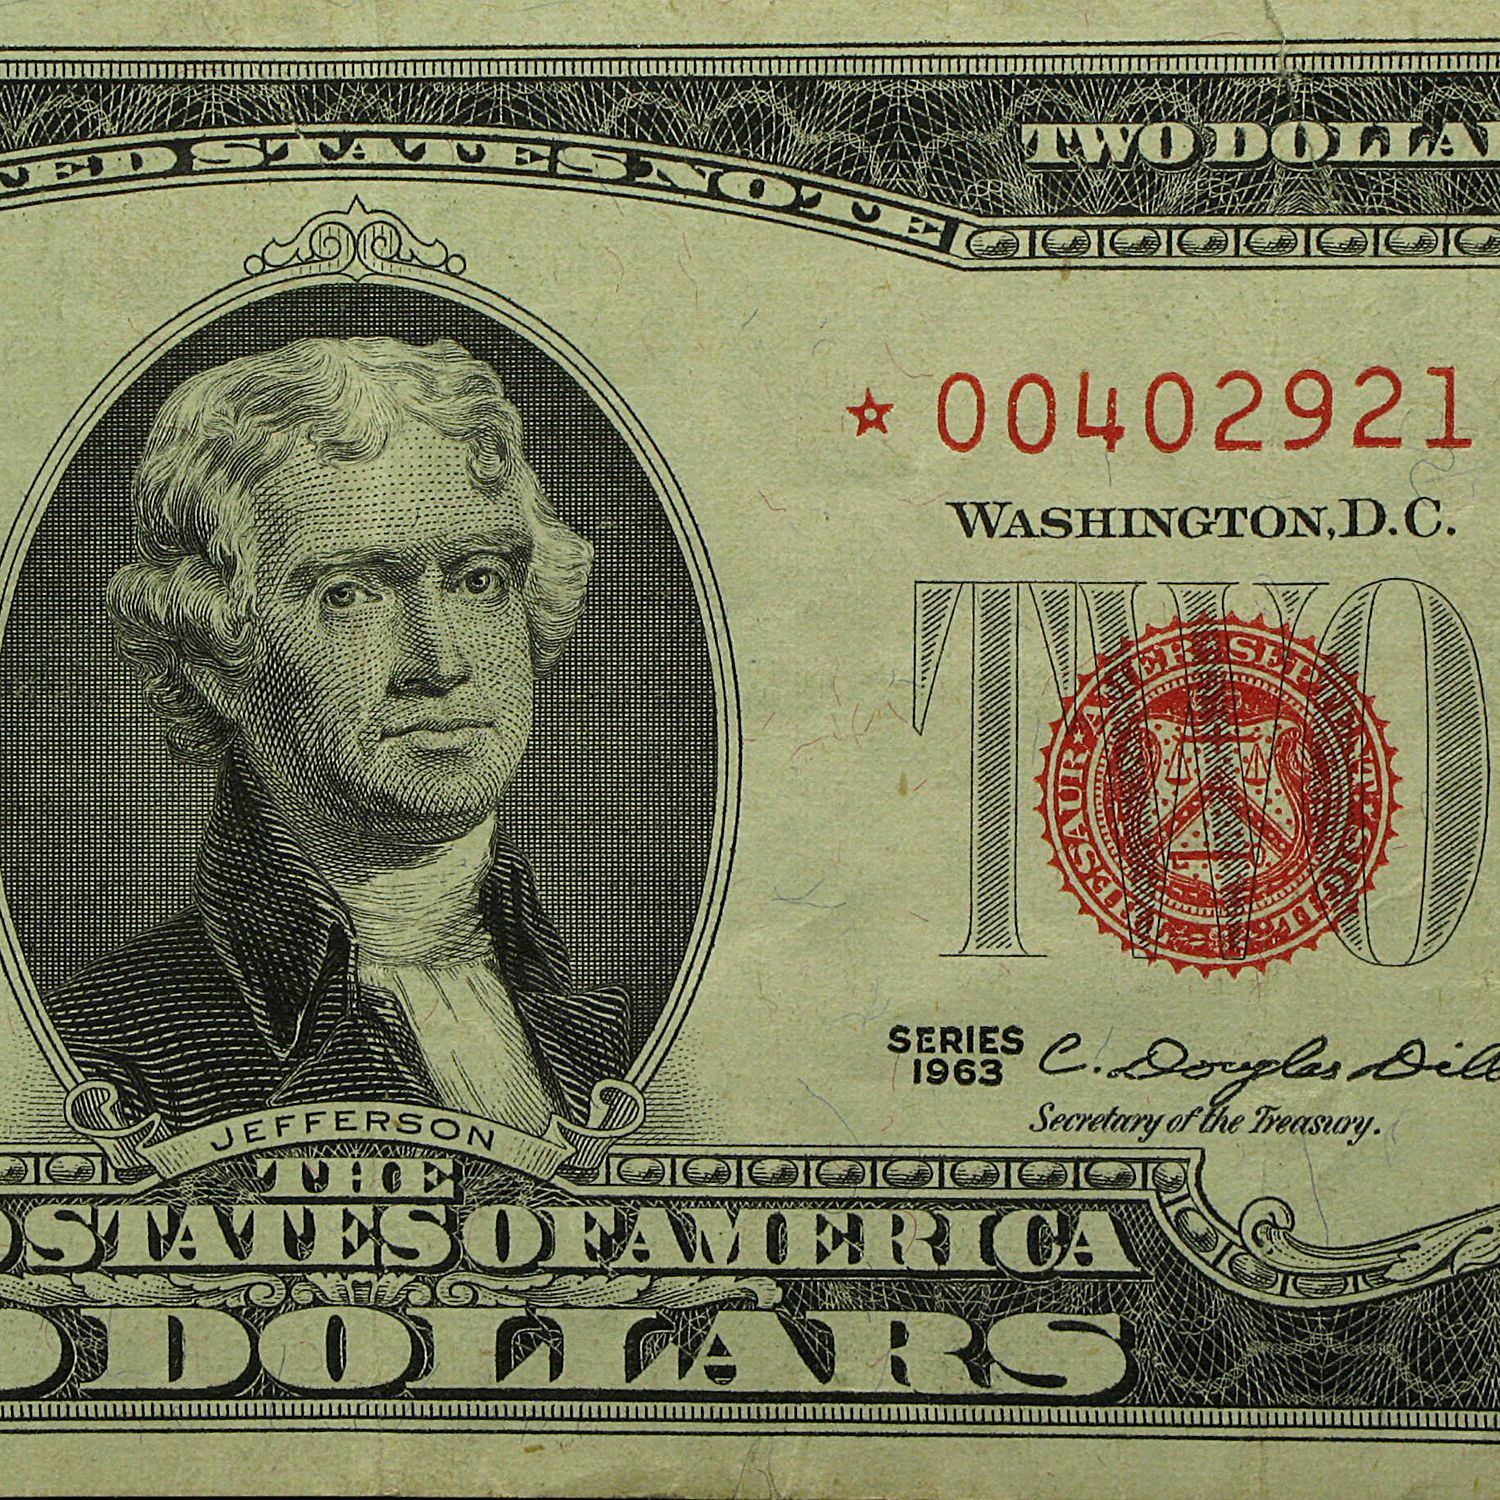 1963* $2.00 U.S. Note Red Seal VG/VF (Star Notes)